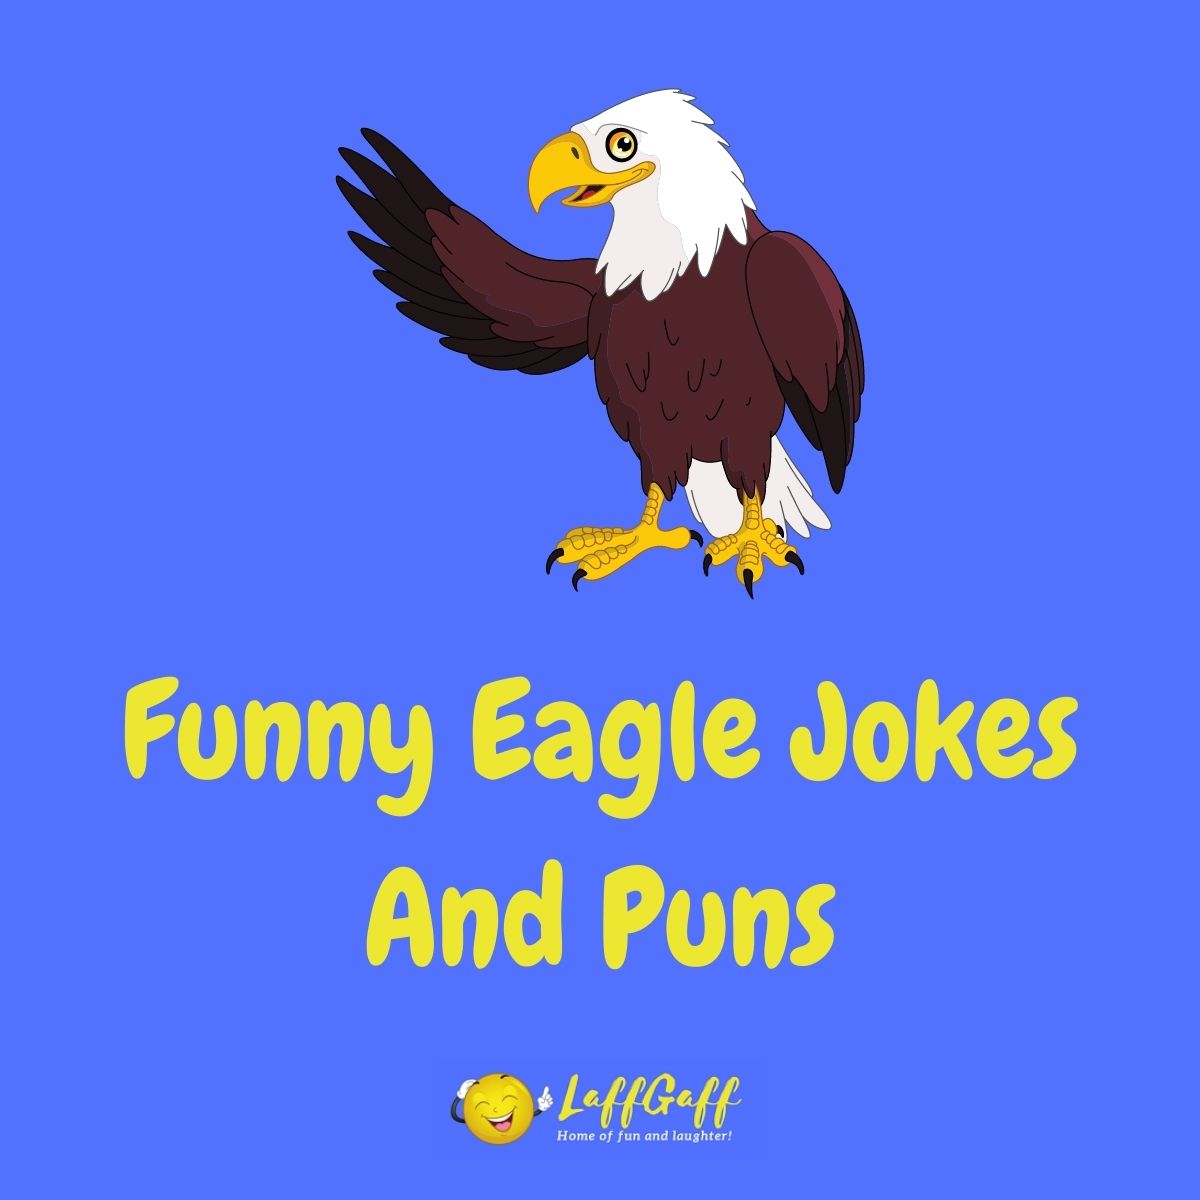 Featured image for a page of funny eagle jokes and puns.